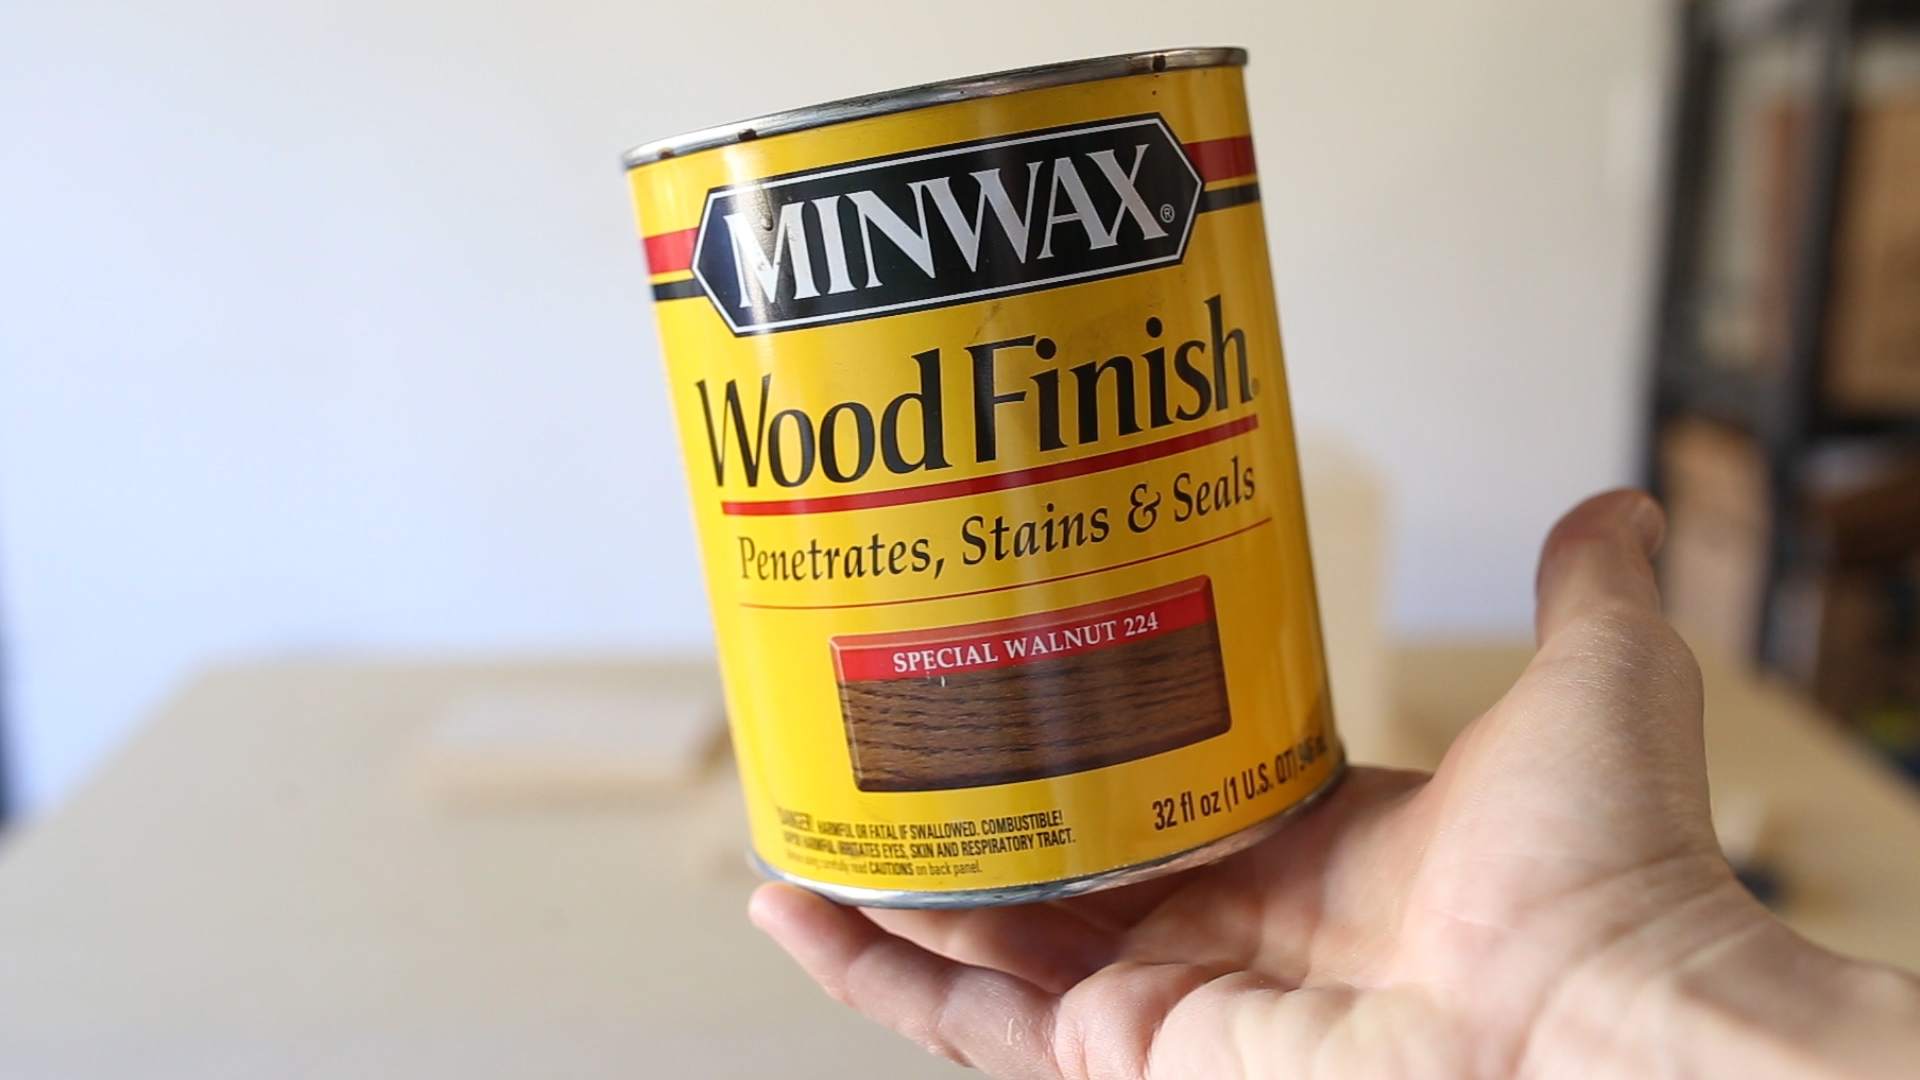 And then I applied a walnut stain